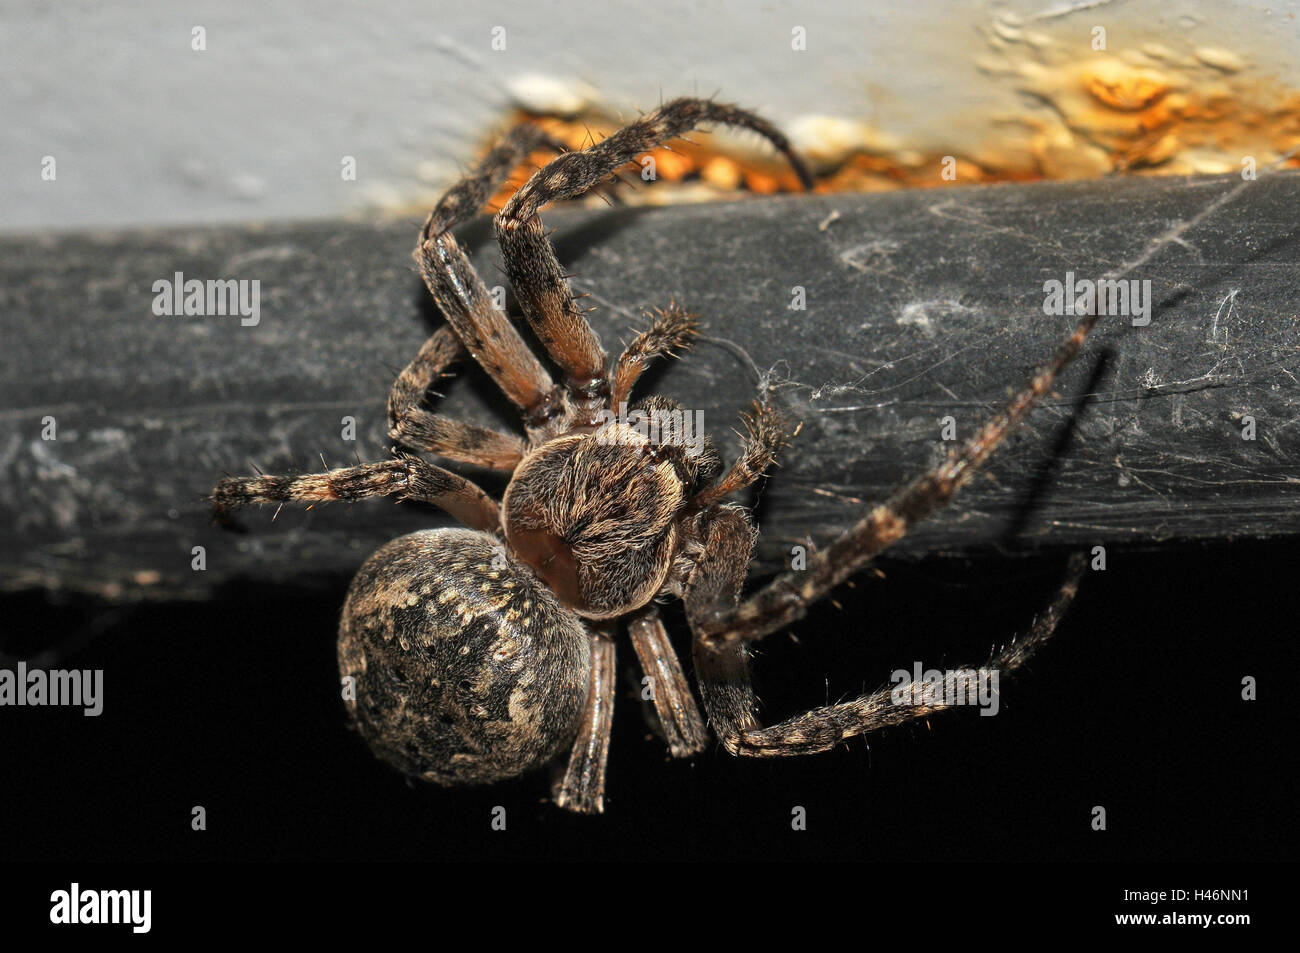 Crack garden spider on rusty pipe, - Stock Image